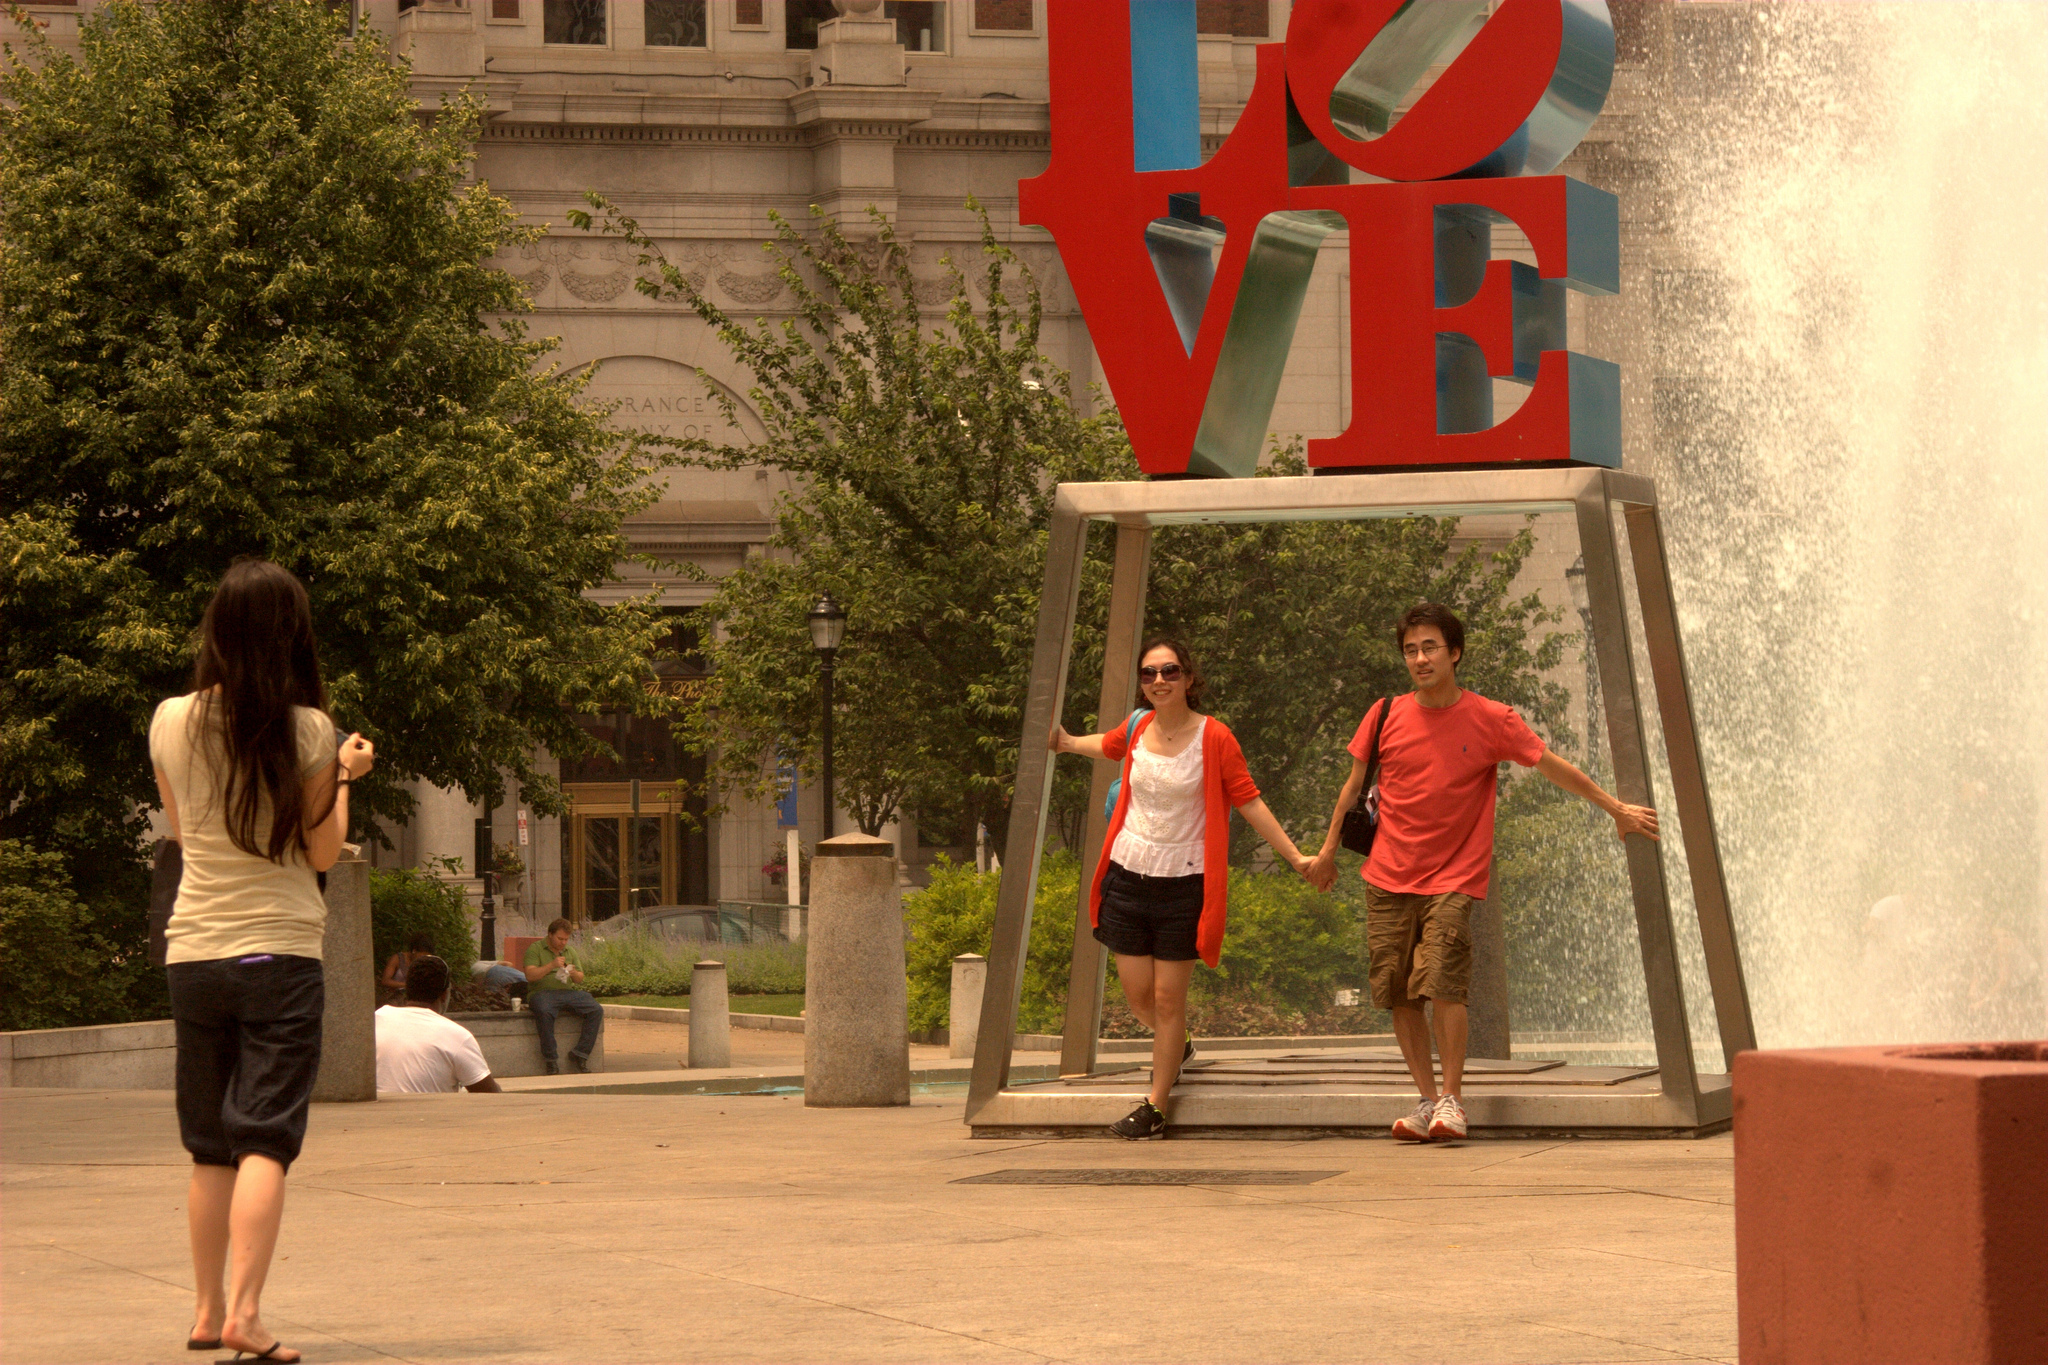 Love in the Afternoon, Friday, June 22, 2012